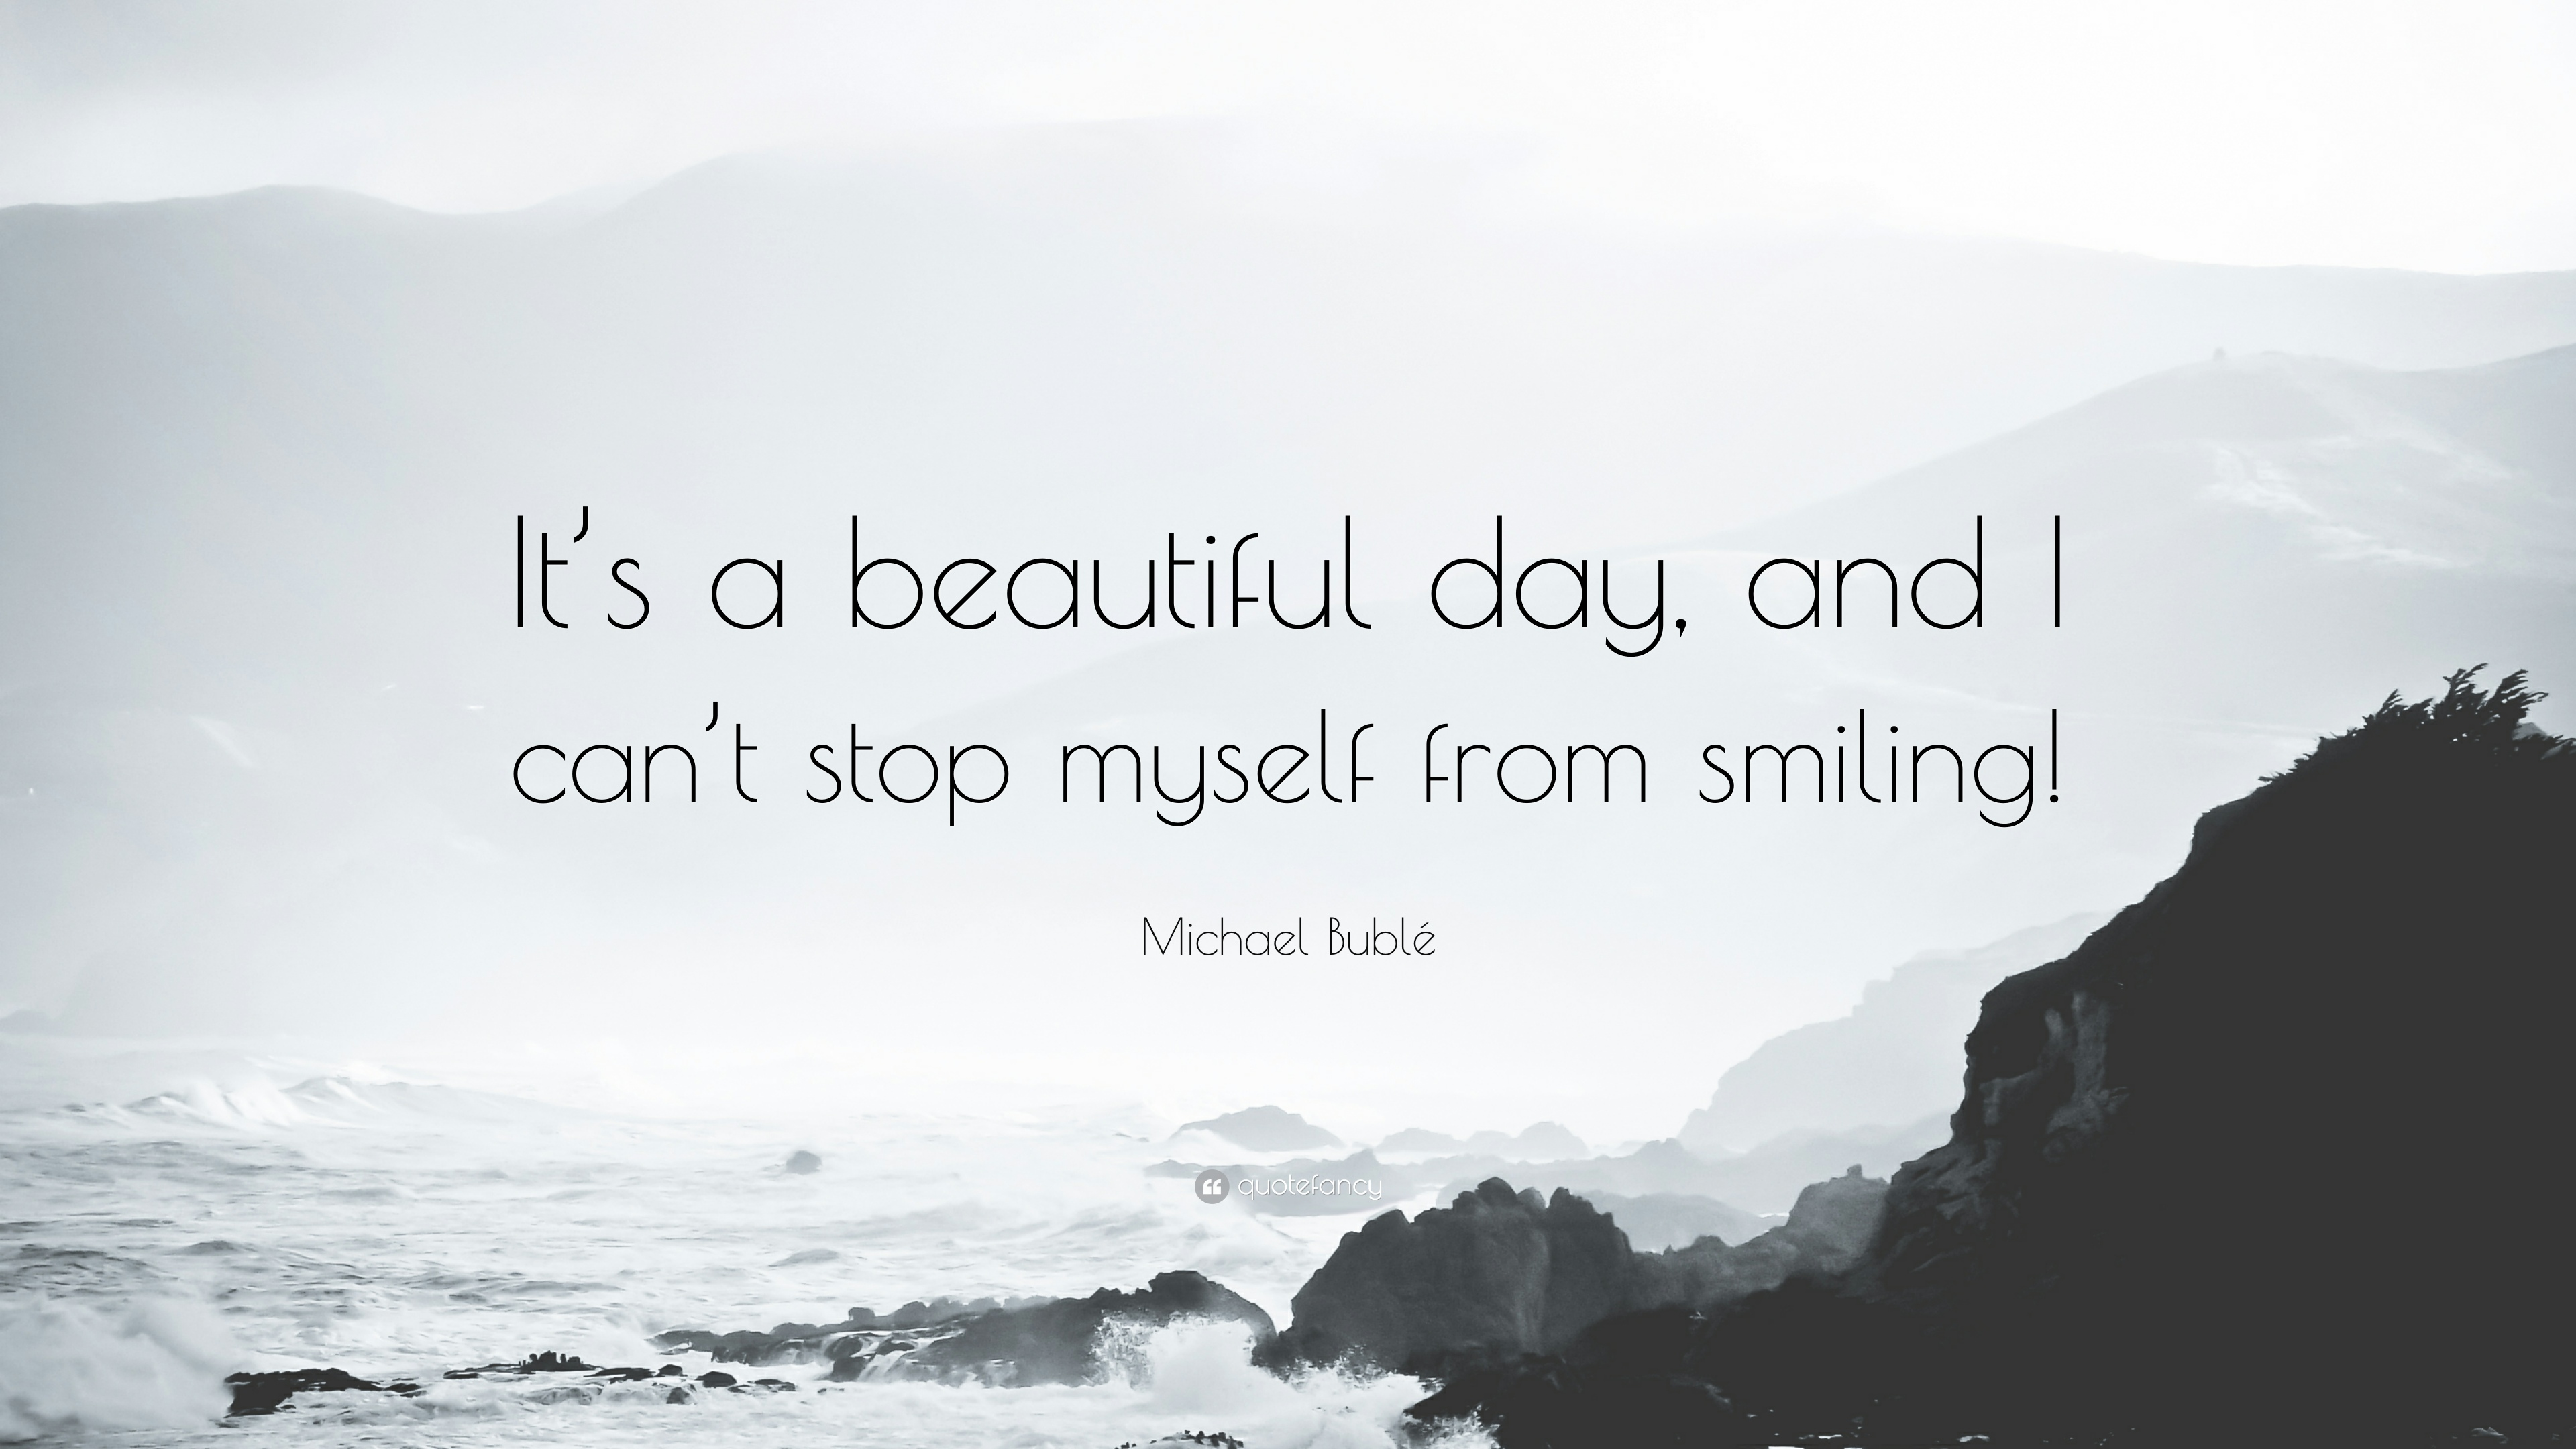 Michael Buble Quote It S A Beautiful Day And I Can T Stop Myself From Smiling 9 Wallpapers Quotefancy